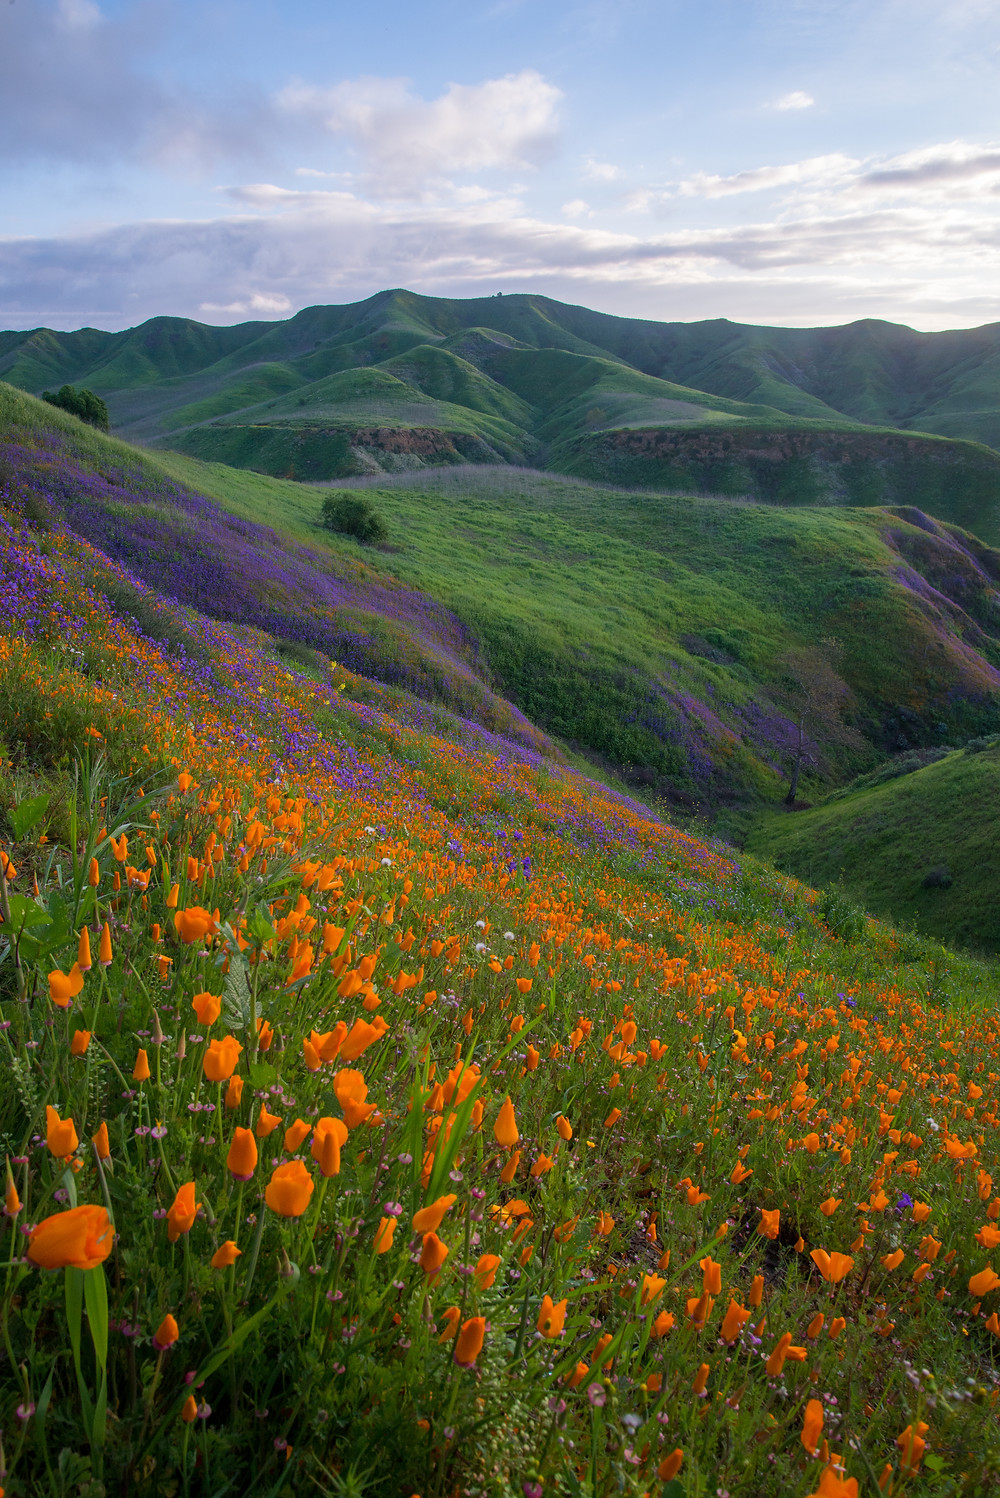 Poppies bloom during a rare spring superbloom in the coastal hills near Chino Hills, CA.